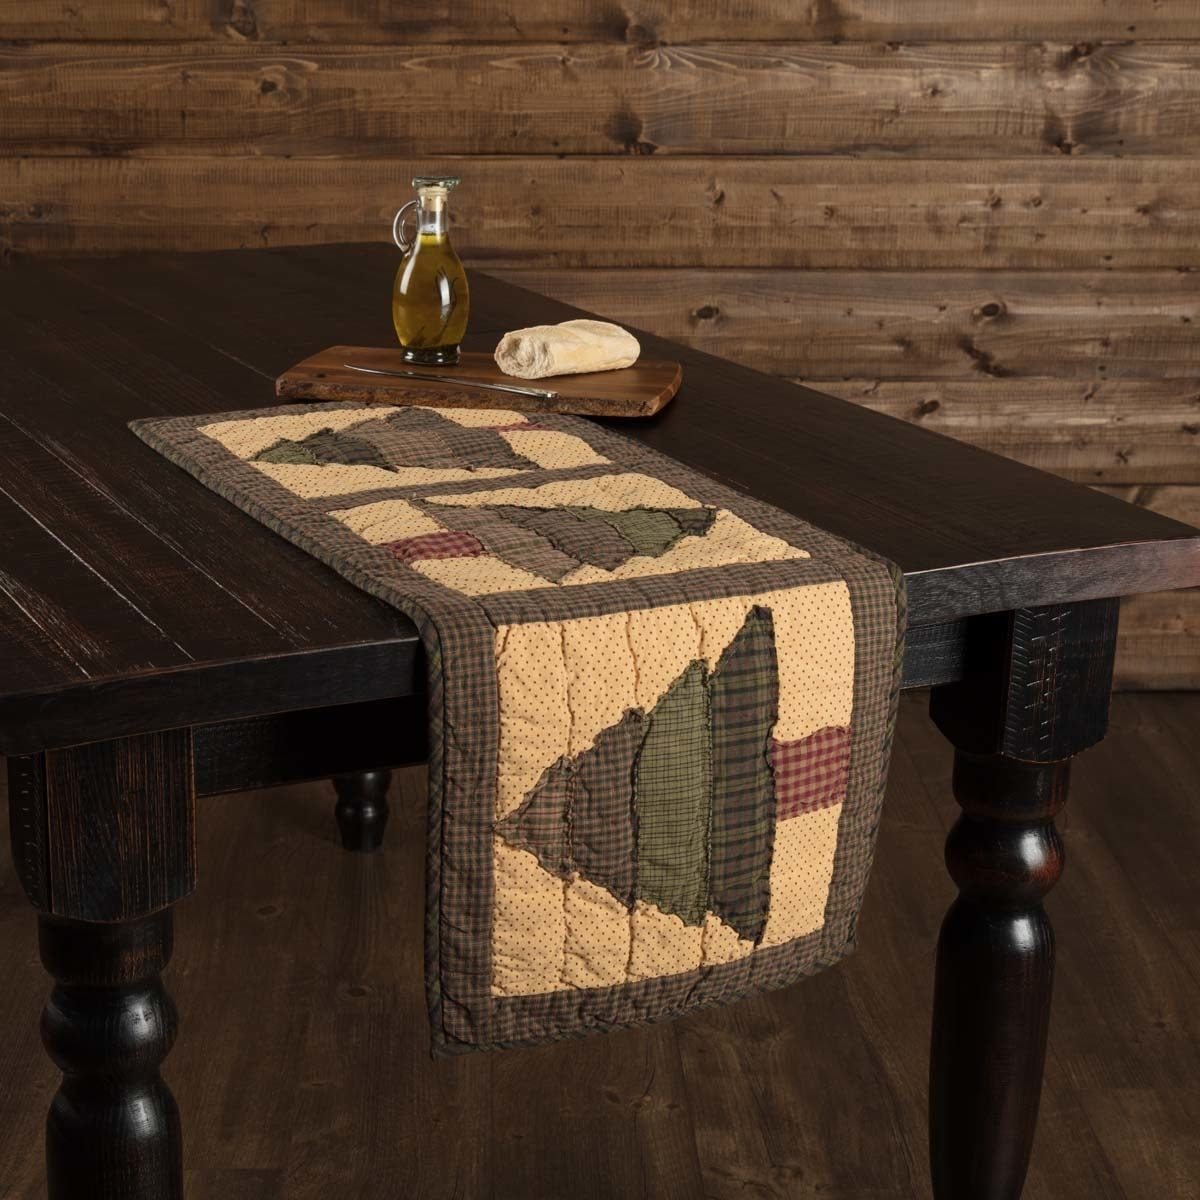 Seasonal Tabletop & Kitchen Sequoia Green Quilted Runner 5b17f29c15910230cf3d6ba0